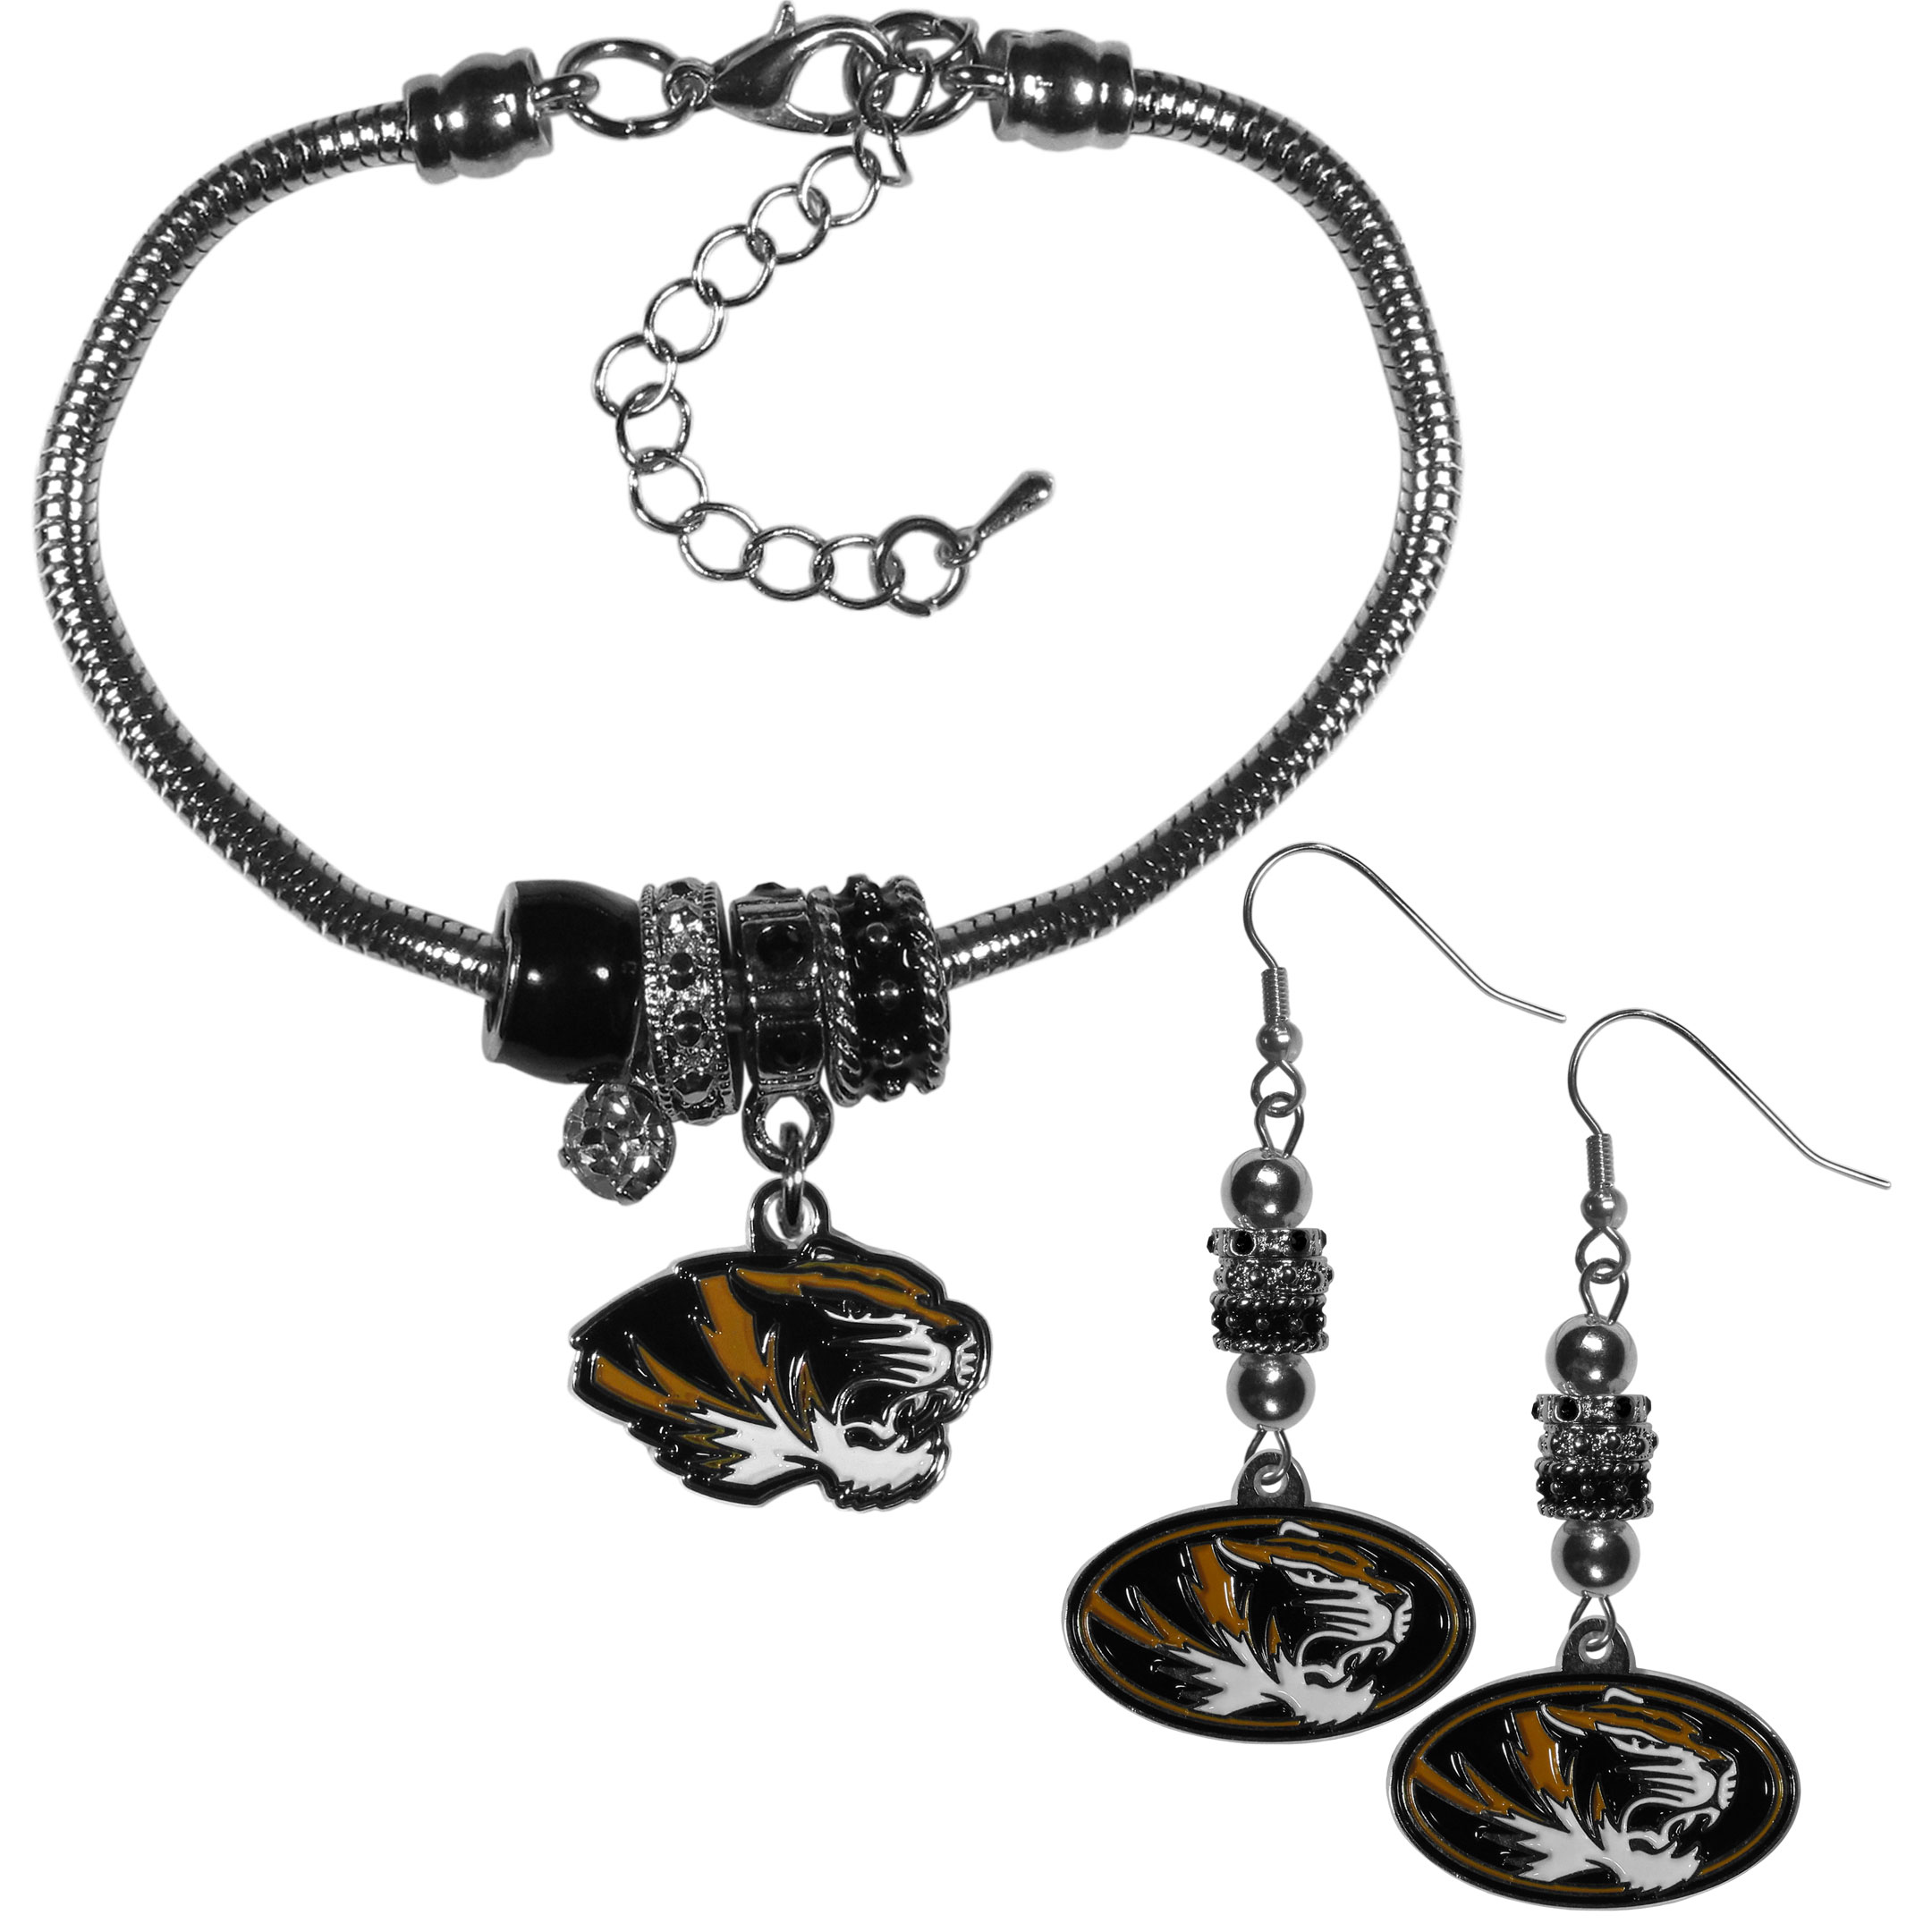 Missouri Tigers Euro Bead Earrings and Bracelet Set - We combine the popular Euro bead style with your love of the Missouri Tigers with this beautiful jewelry set that includes earrings and a matching bracelet. The stylish earrings feature hypoallergenic, nickel free fishhook posts and 3 team colored Euro beads and a metal team charm. The matching snake chain bracelet is 7.5 inches long with a 2 inch extender and 4 Euro beads with a rhinestone charm and team charm.